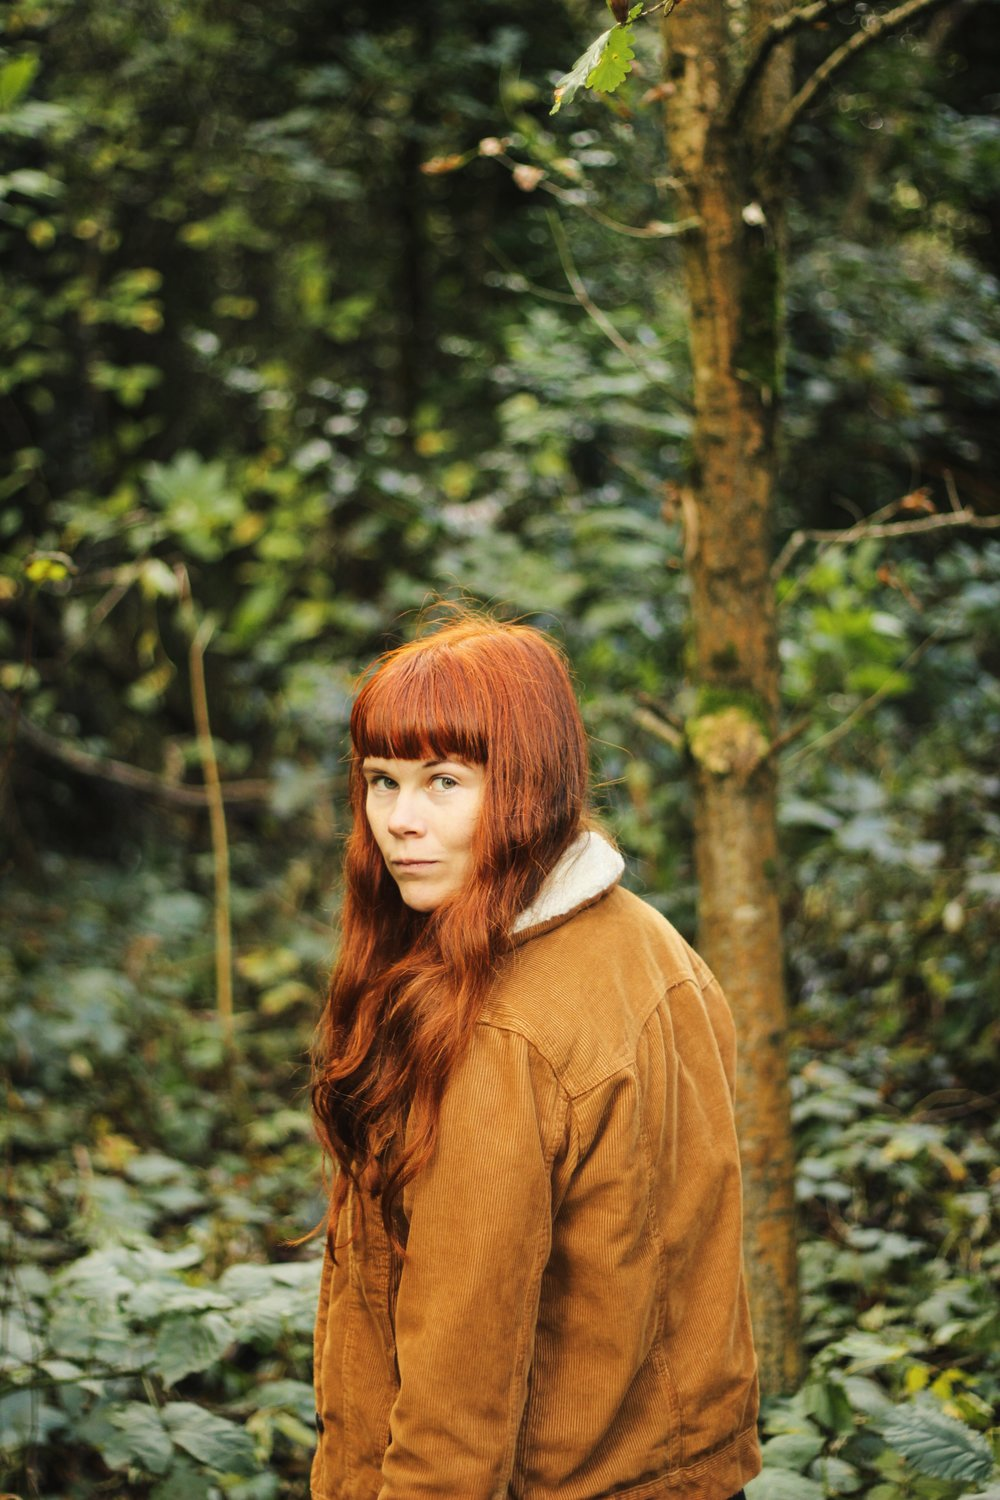 Autumn Girl in Woods